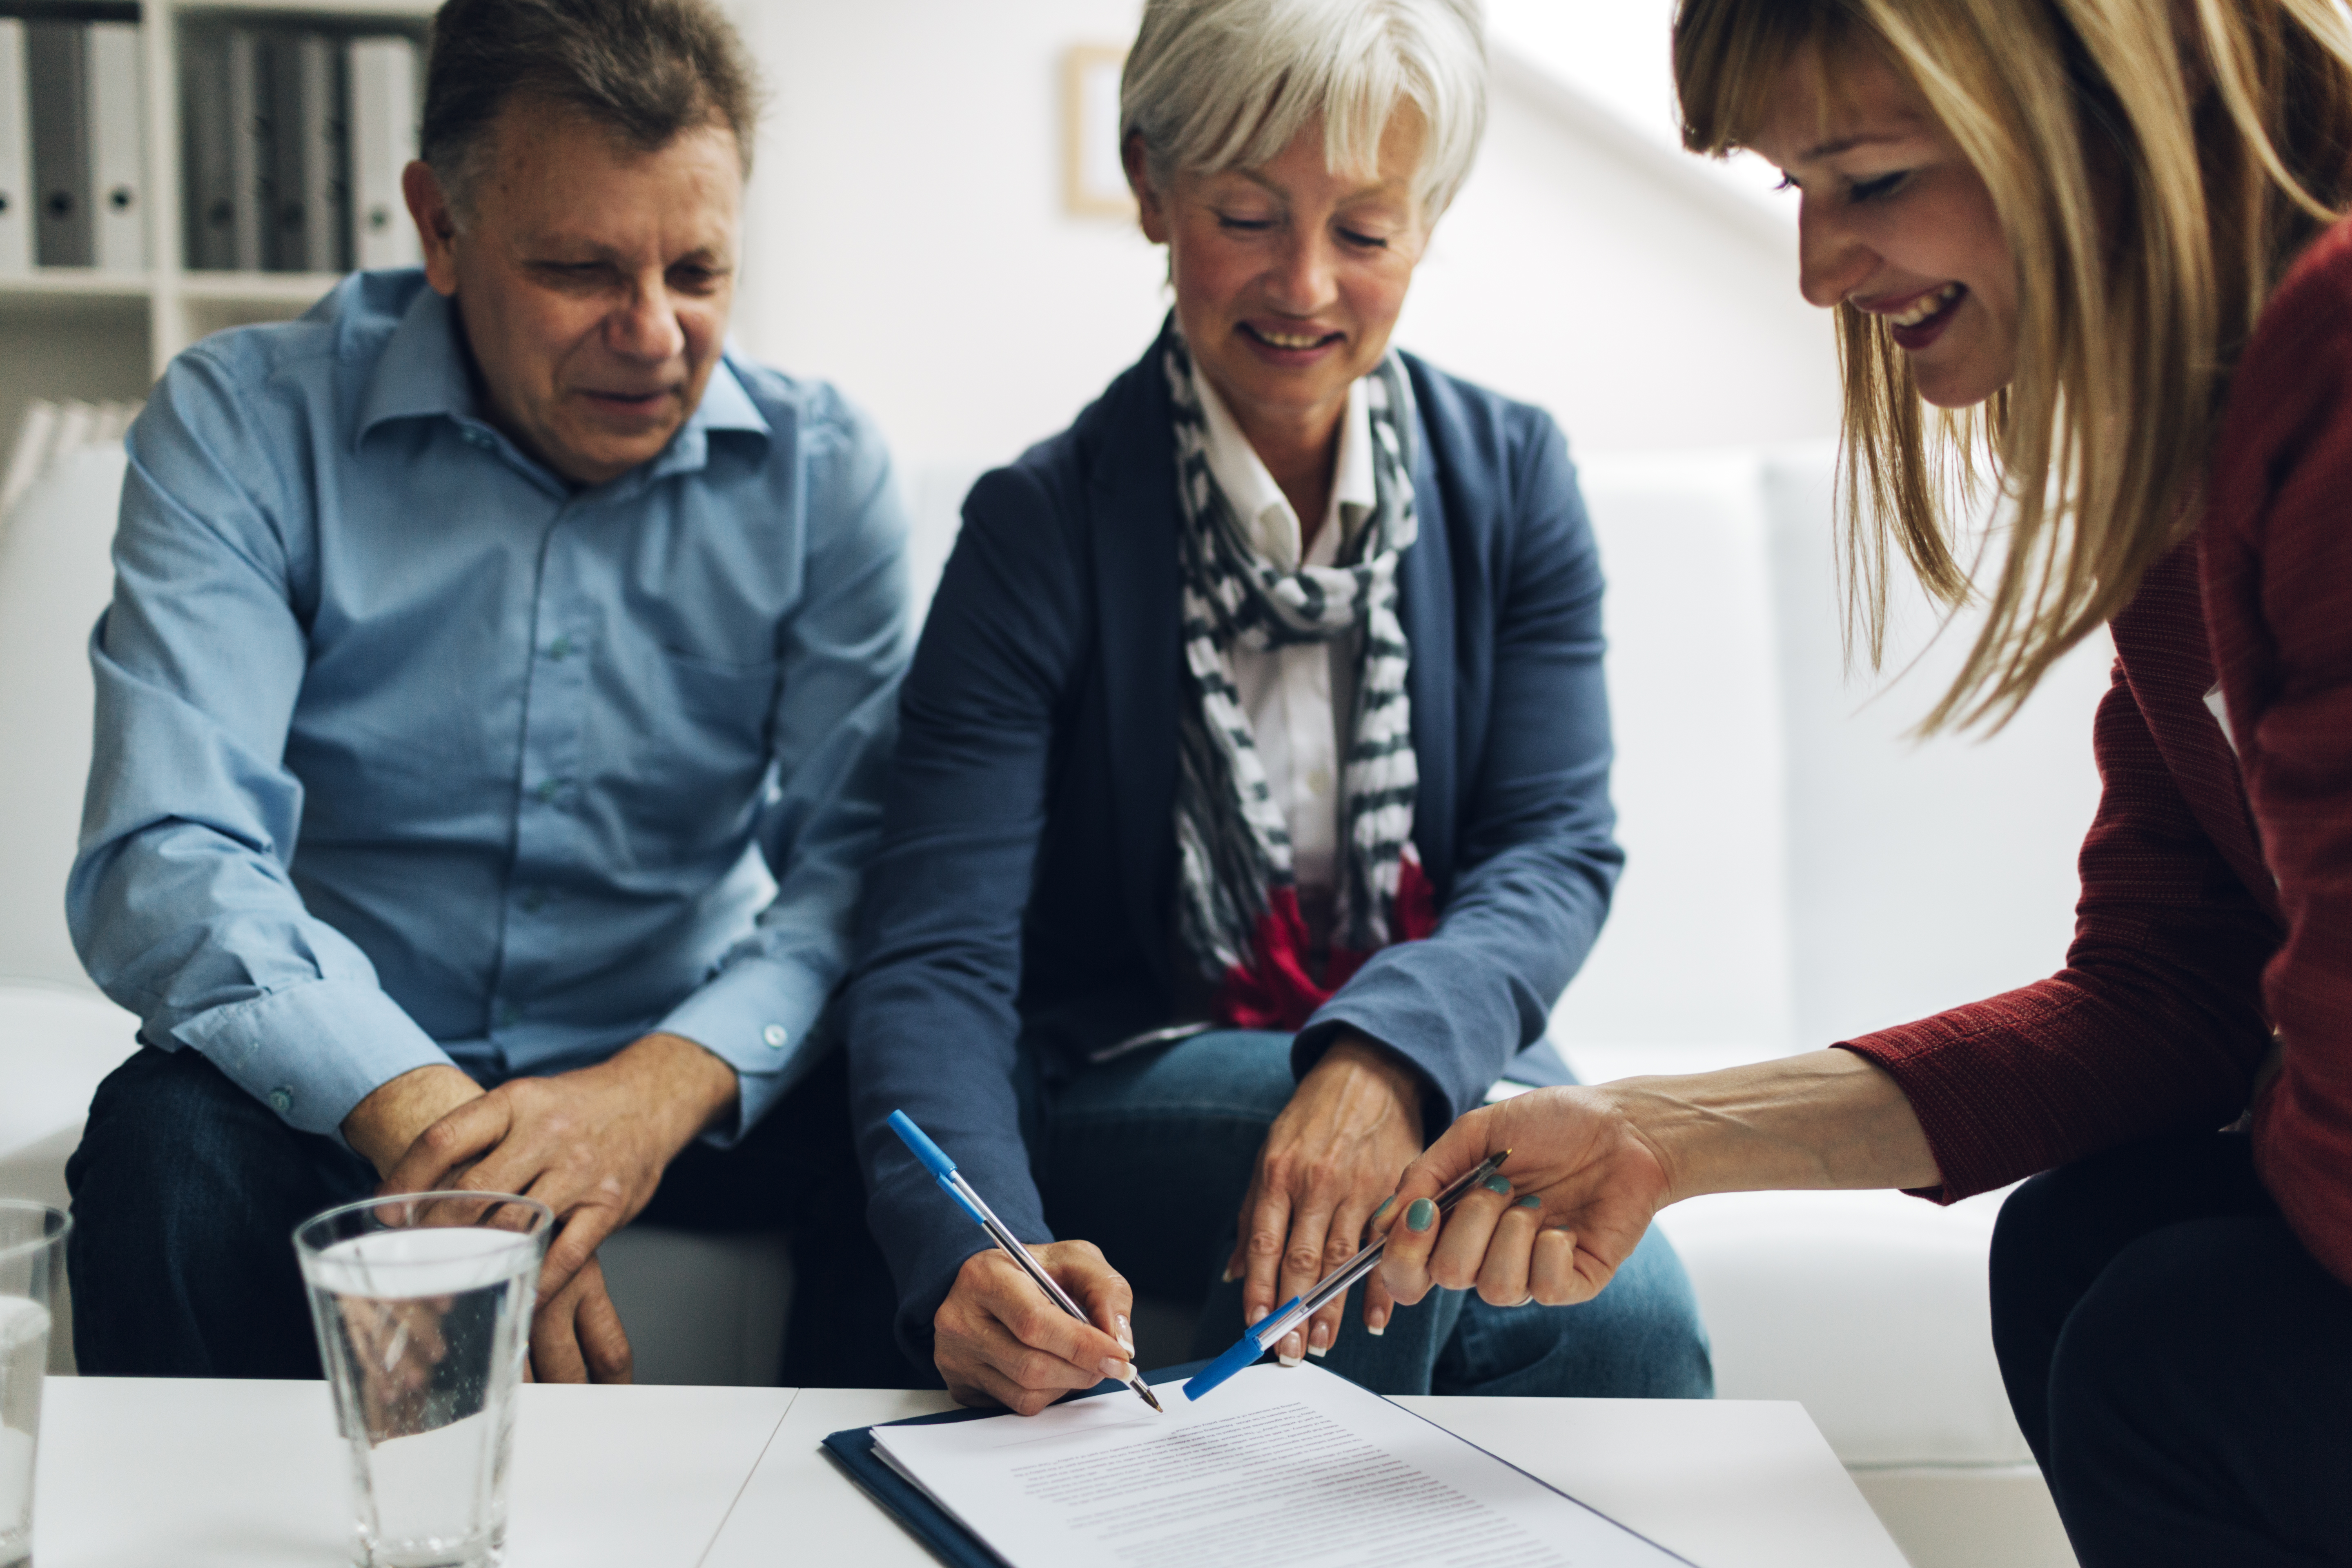 Mature Couple Meeting with Financial Advisor, selective focus to mature woman signing agreement.